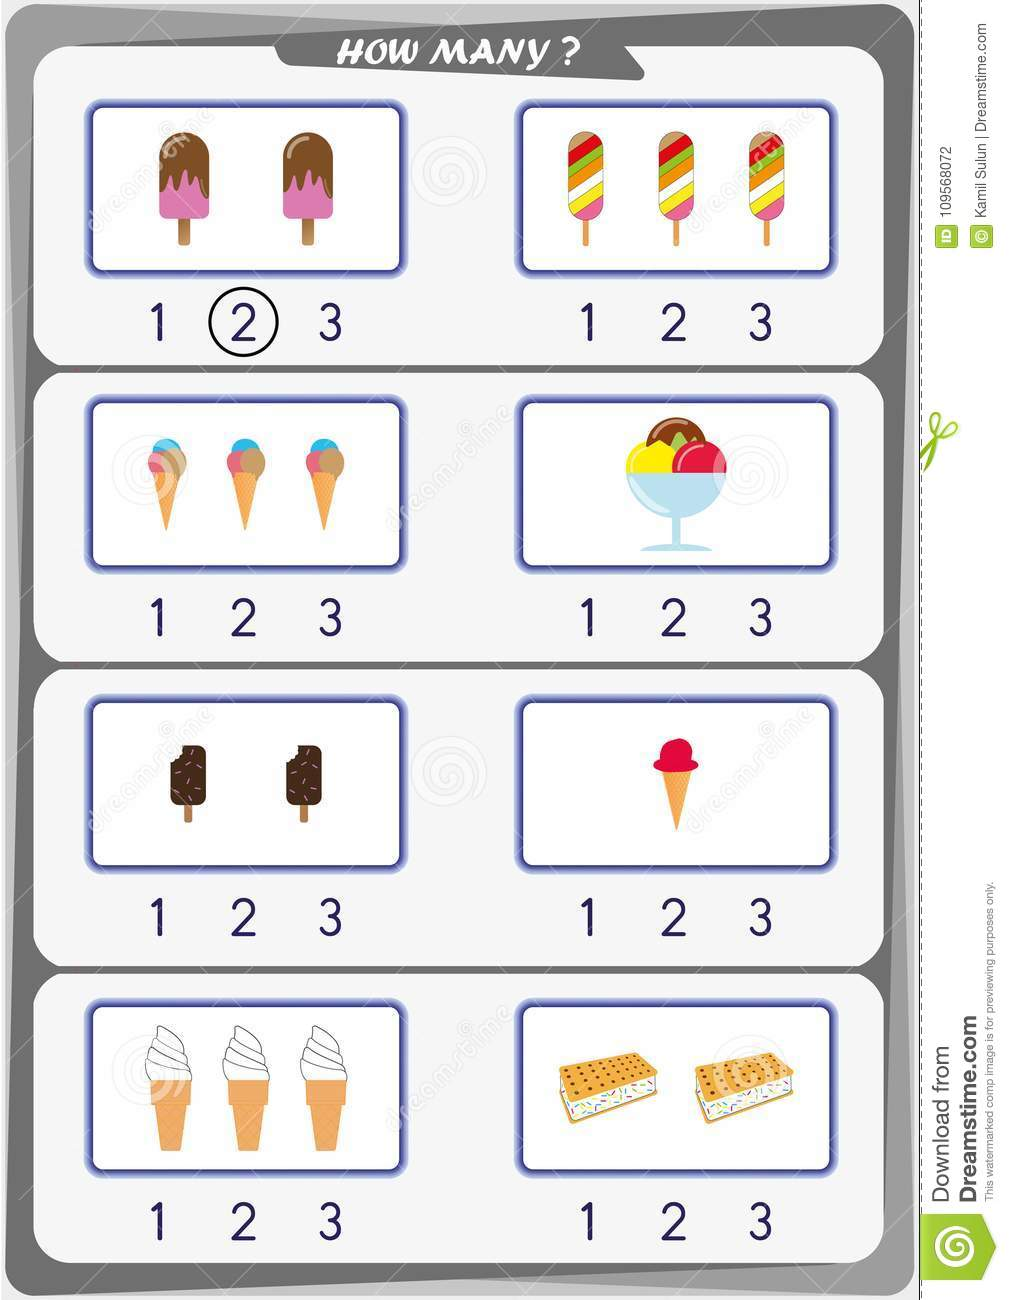 Worksheet For Kids, Count The Number Of Objects, Learn The Numbers 1 ...